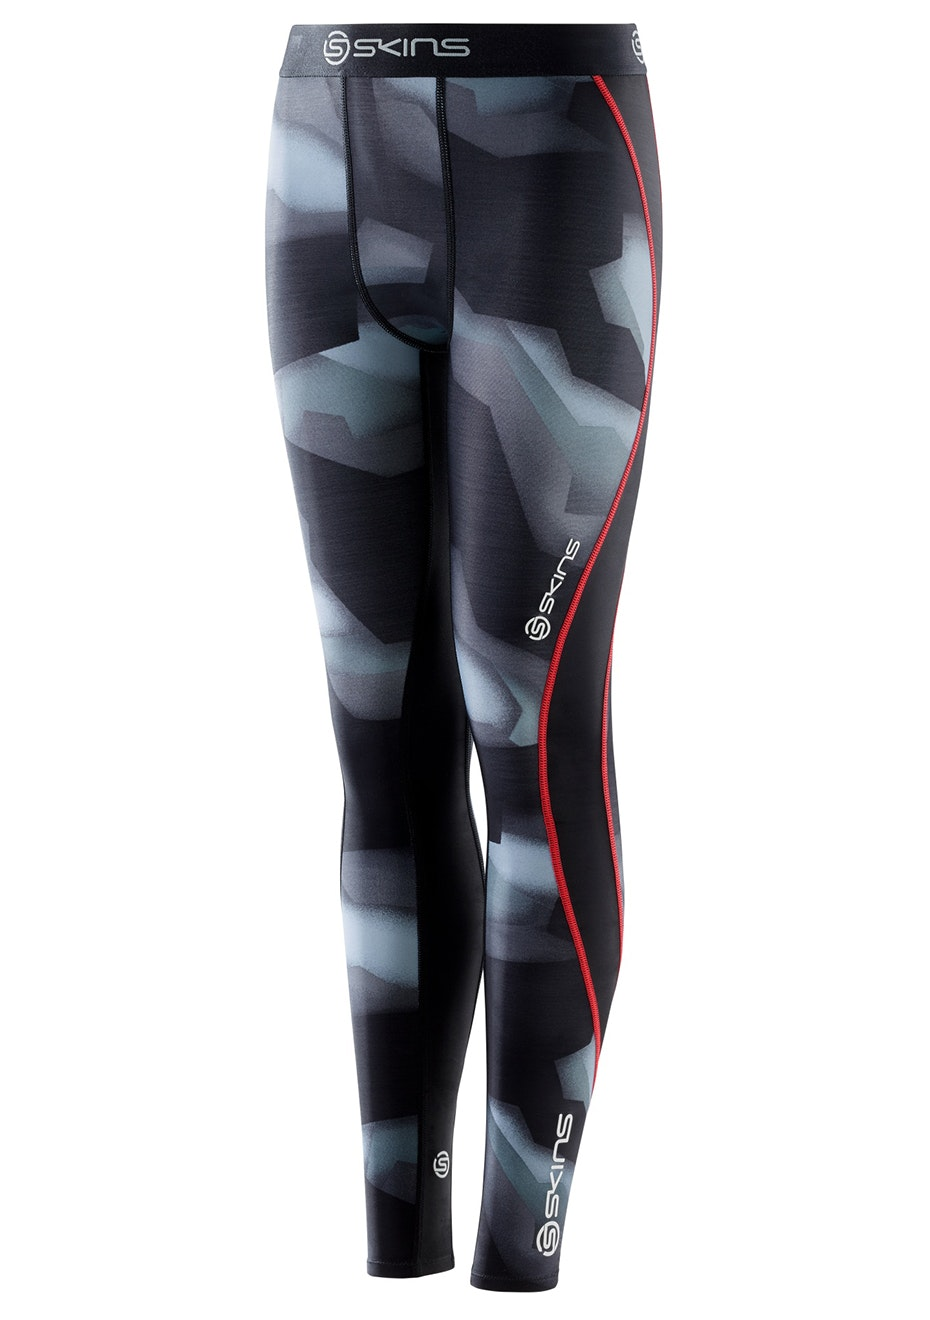 Skins - DNAmic Youth Long Tights Glitch Camo